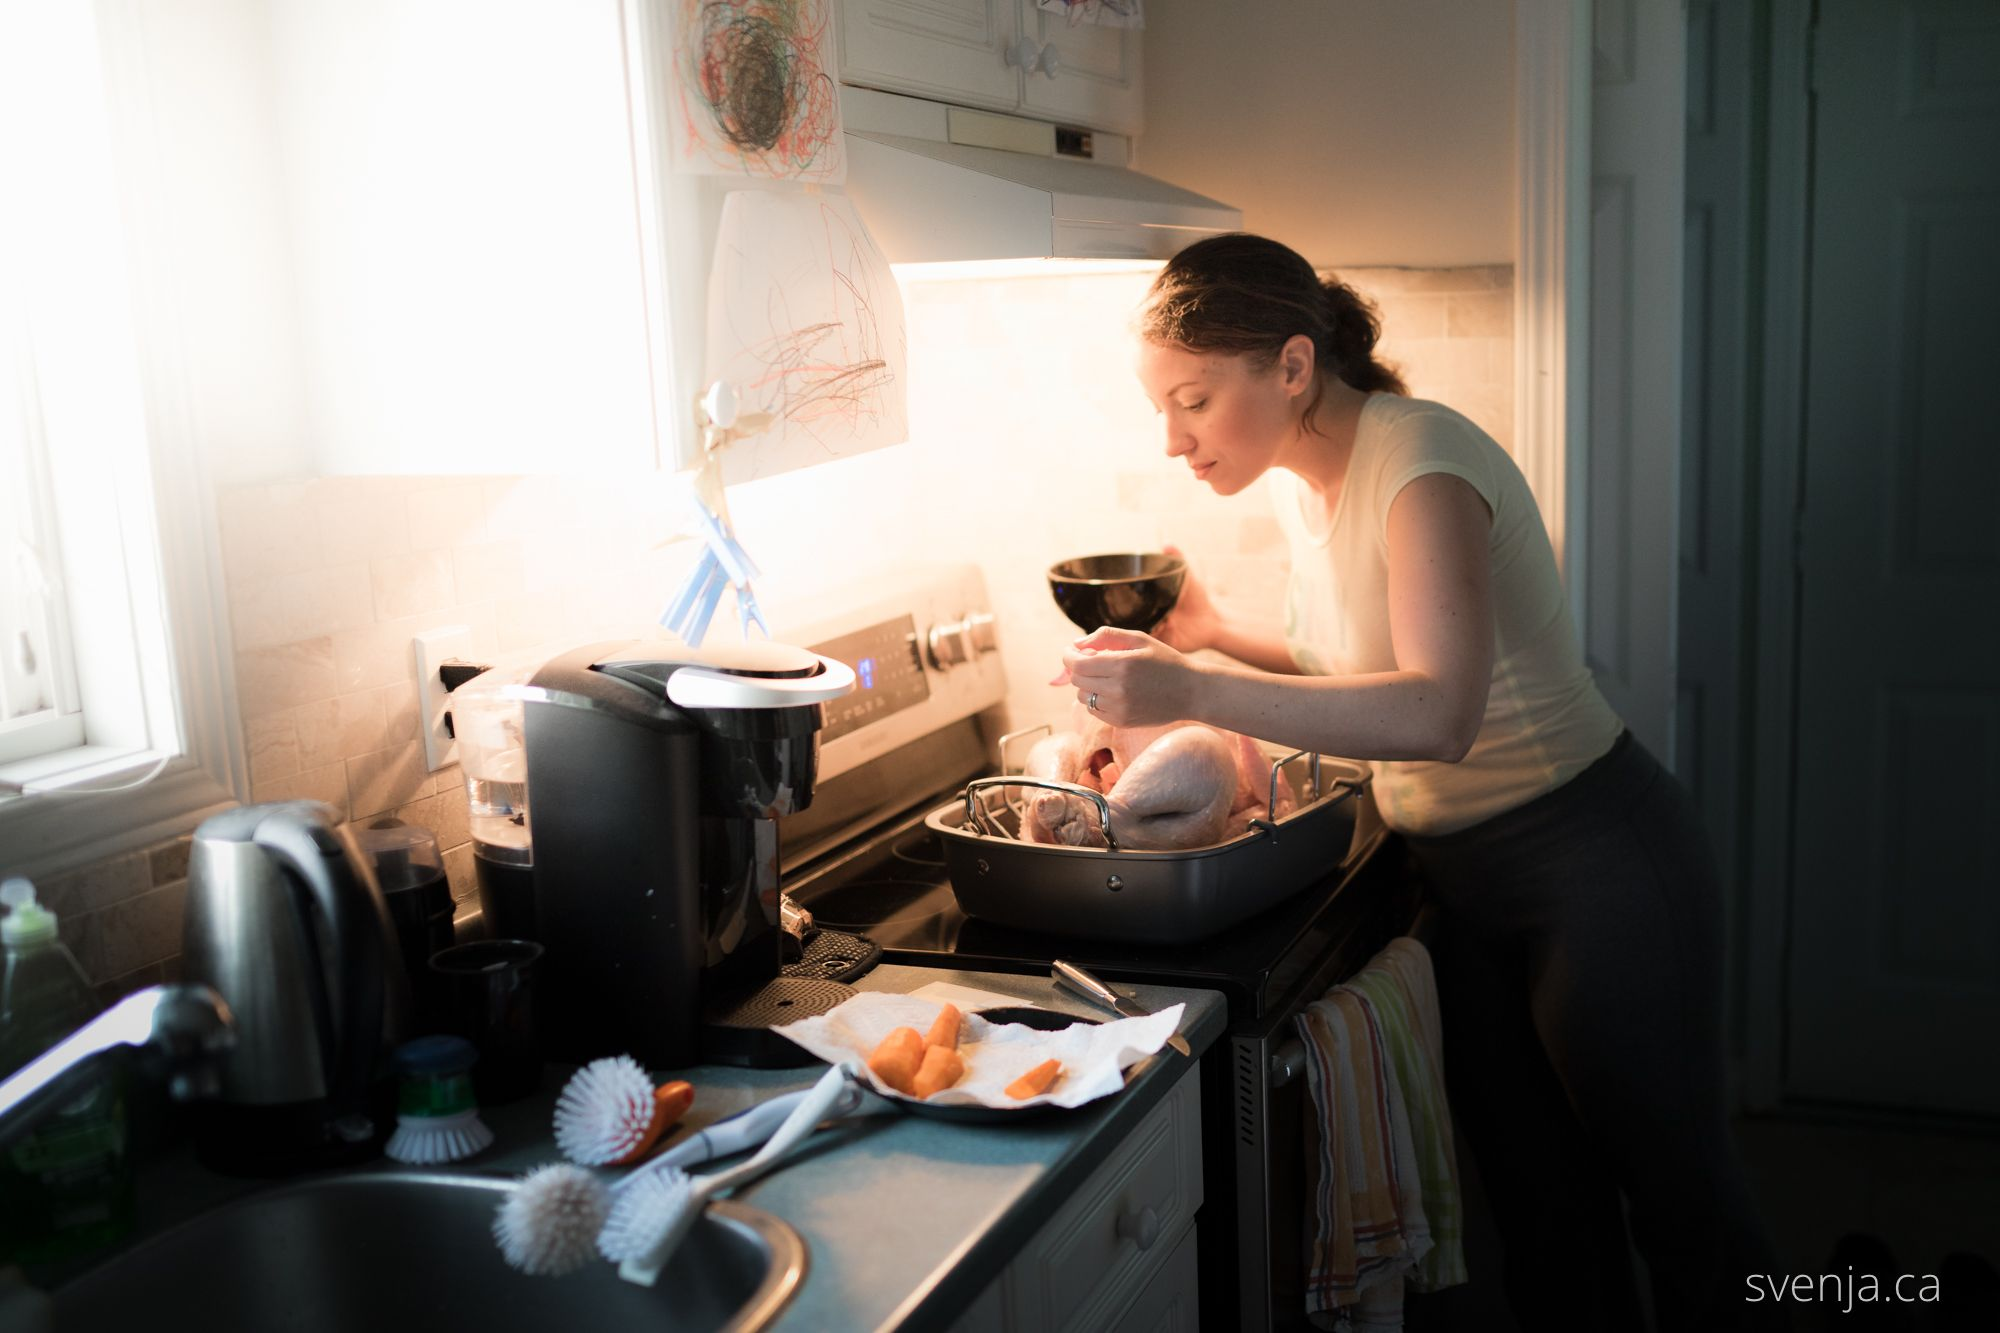 woman seasoning a turkey in a kitchen